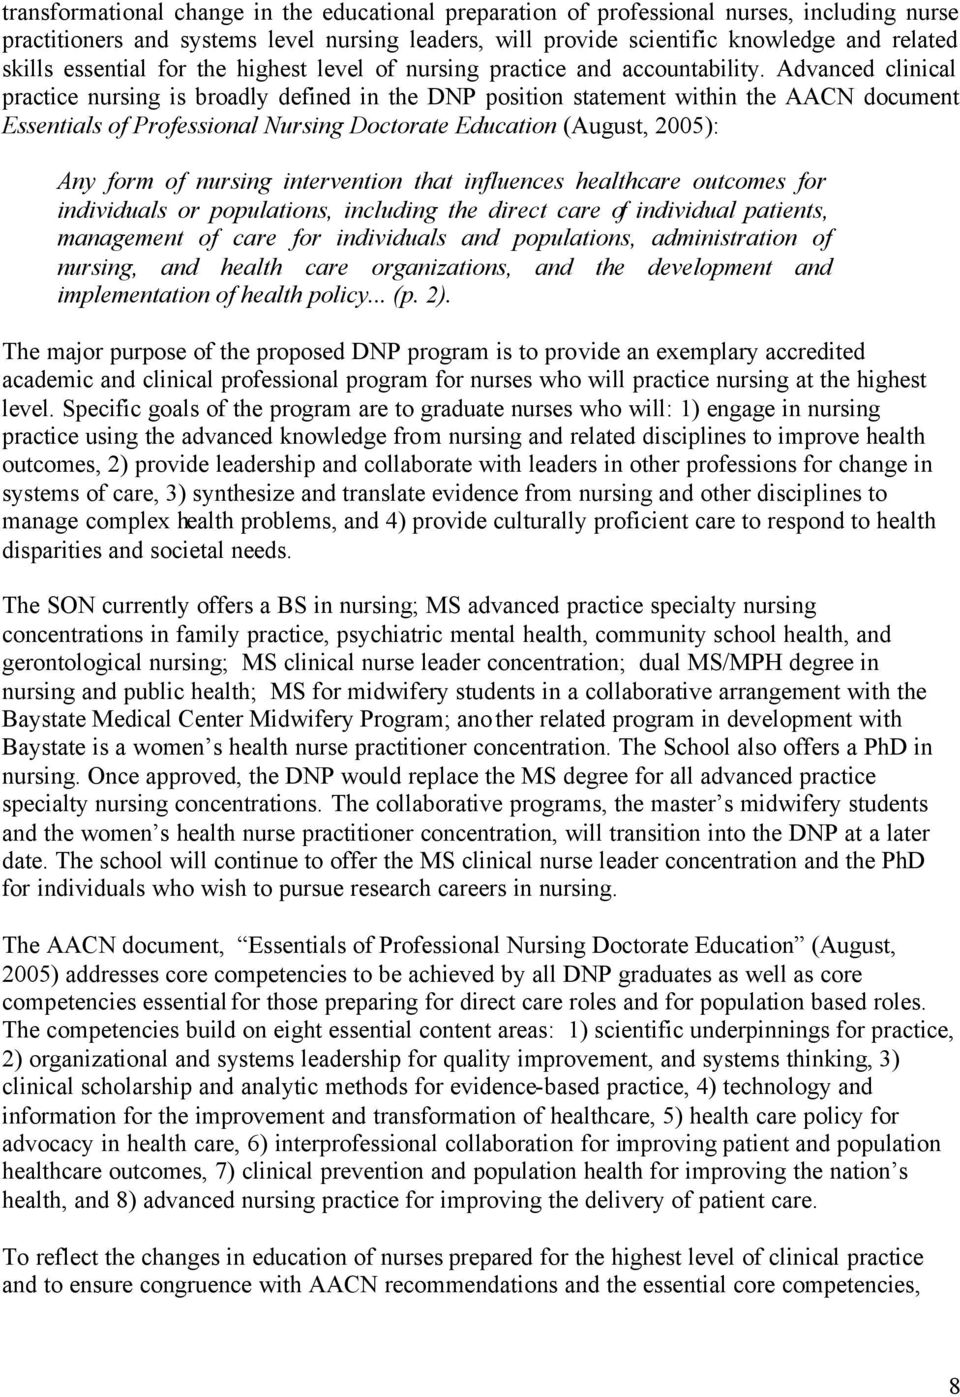 Advanced clinical practice nursing is broadly defined in the DNP position statement within the AACN document Essentials of Professional Nursing Doctorate Education (August, 2005): Any form of nursing